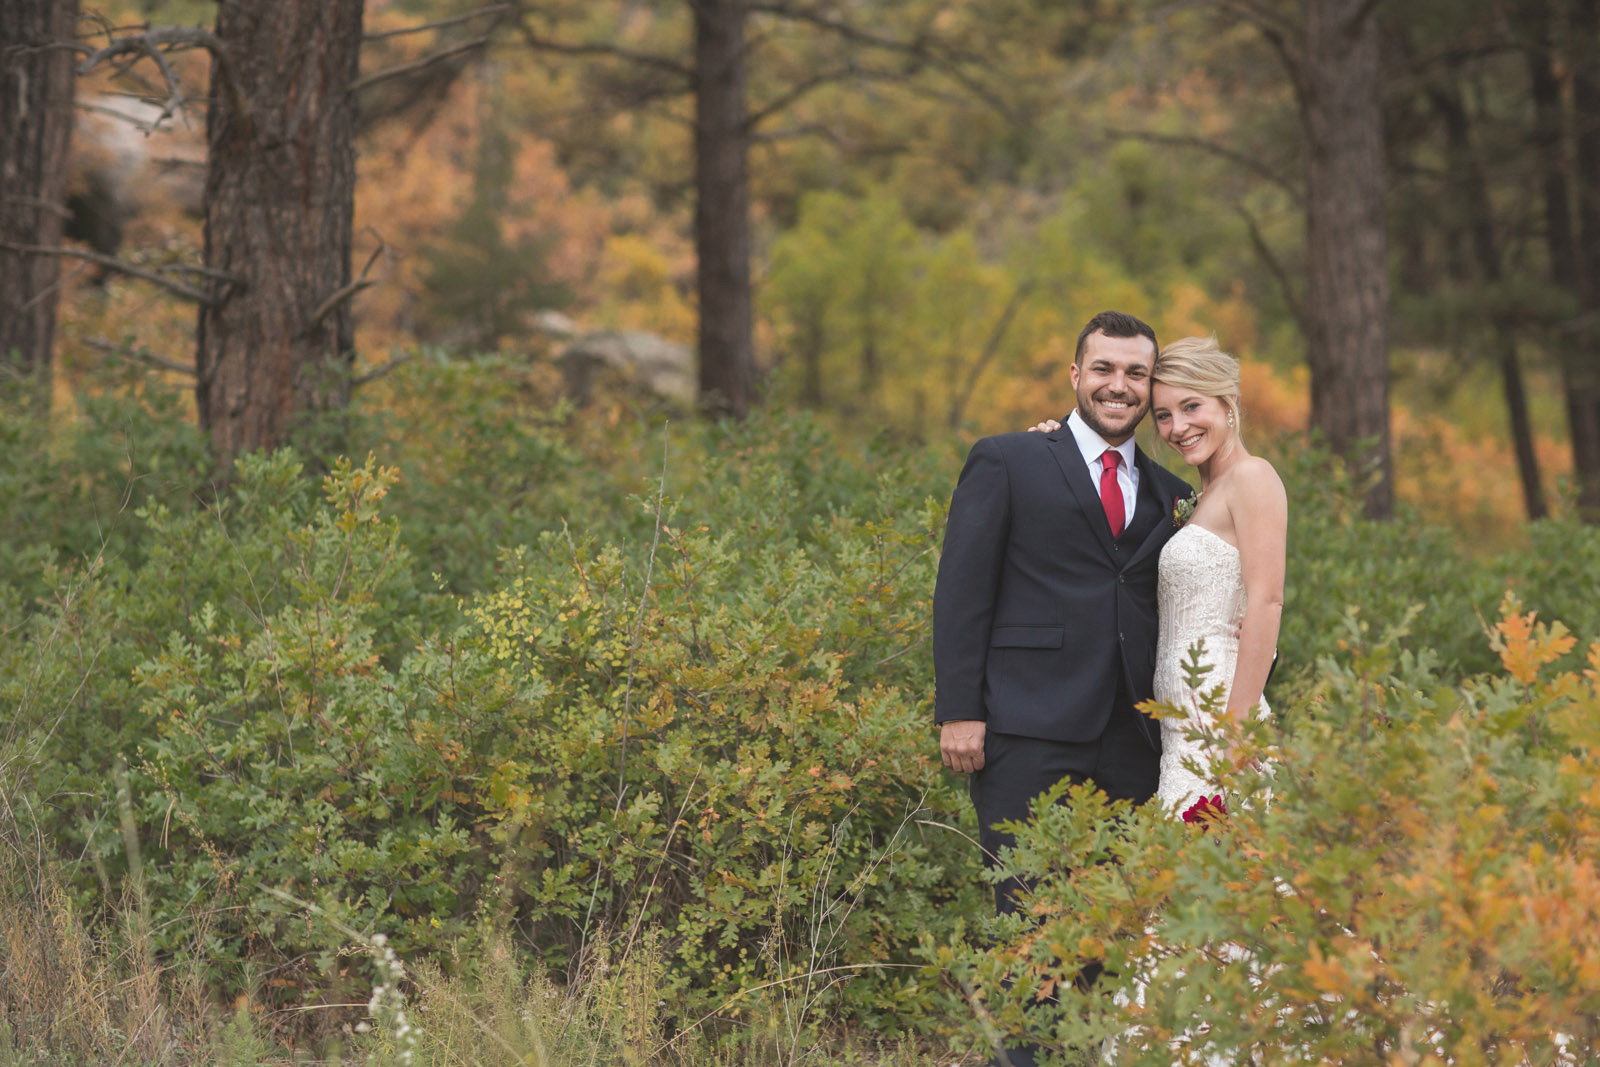 138-beautiful-bride-and-groom-photojournalist-portraits-at-elopement-wedding-in-durango-colorado-forest